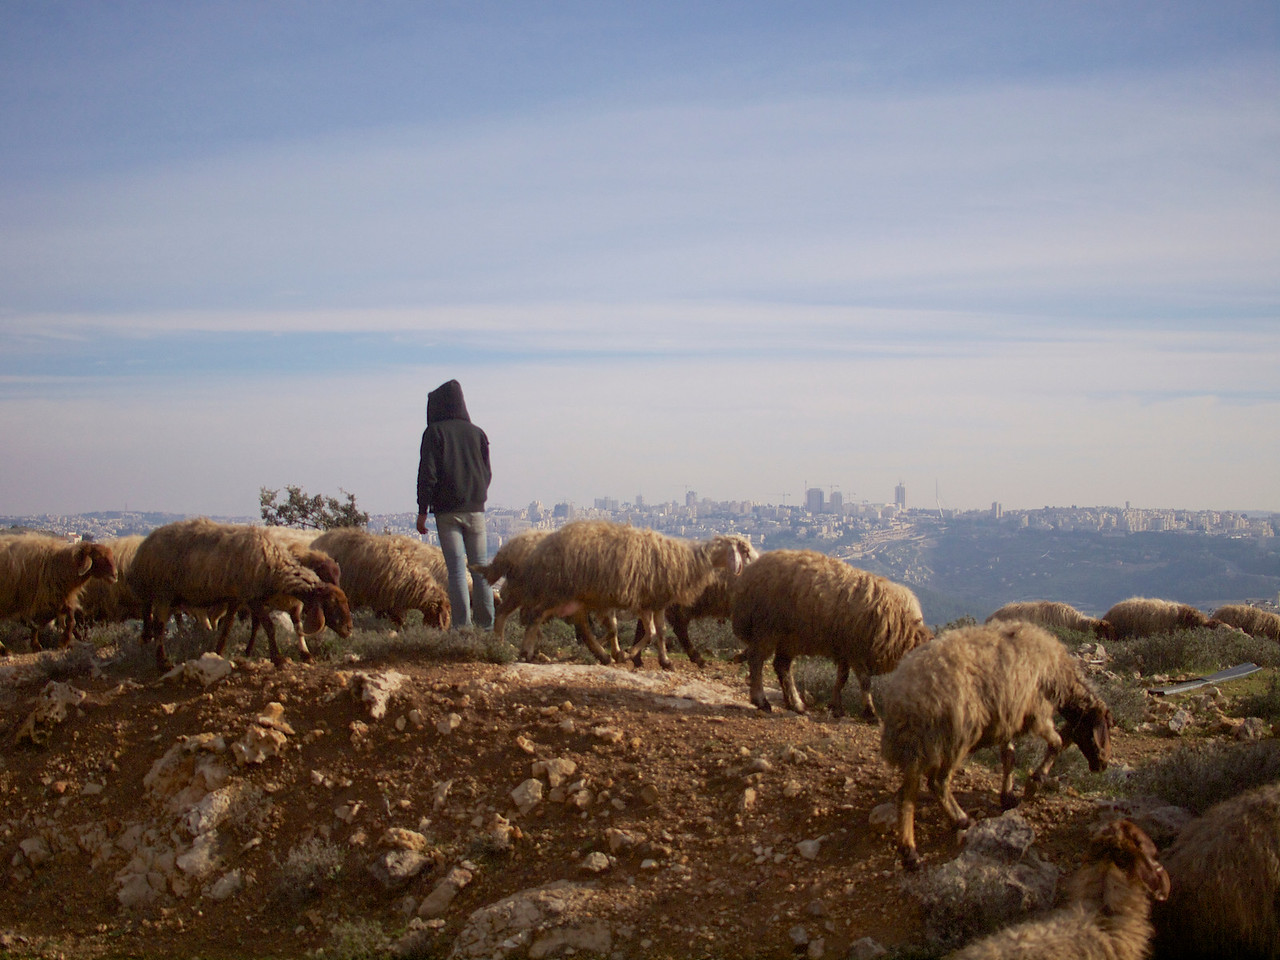 One time I was on the old way of Modiin back to Jerusalem I stopped in a secret place next to the road I know, watching the sheeps passing by, saying hello to the shepherd after taking this.